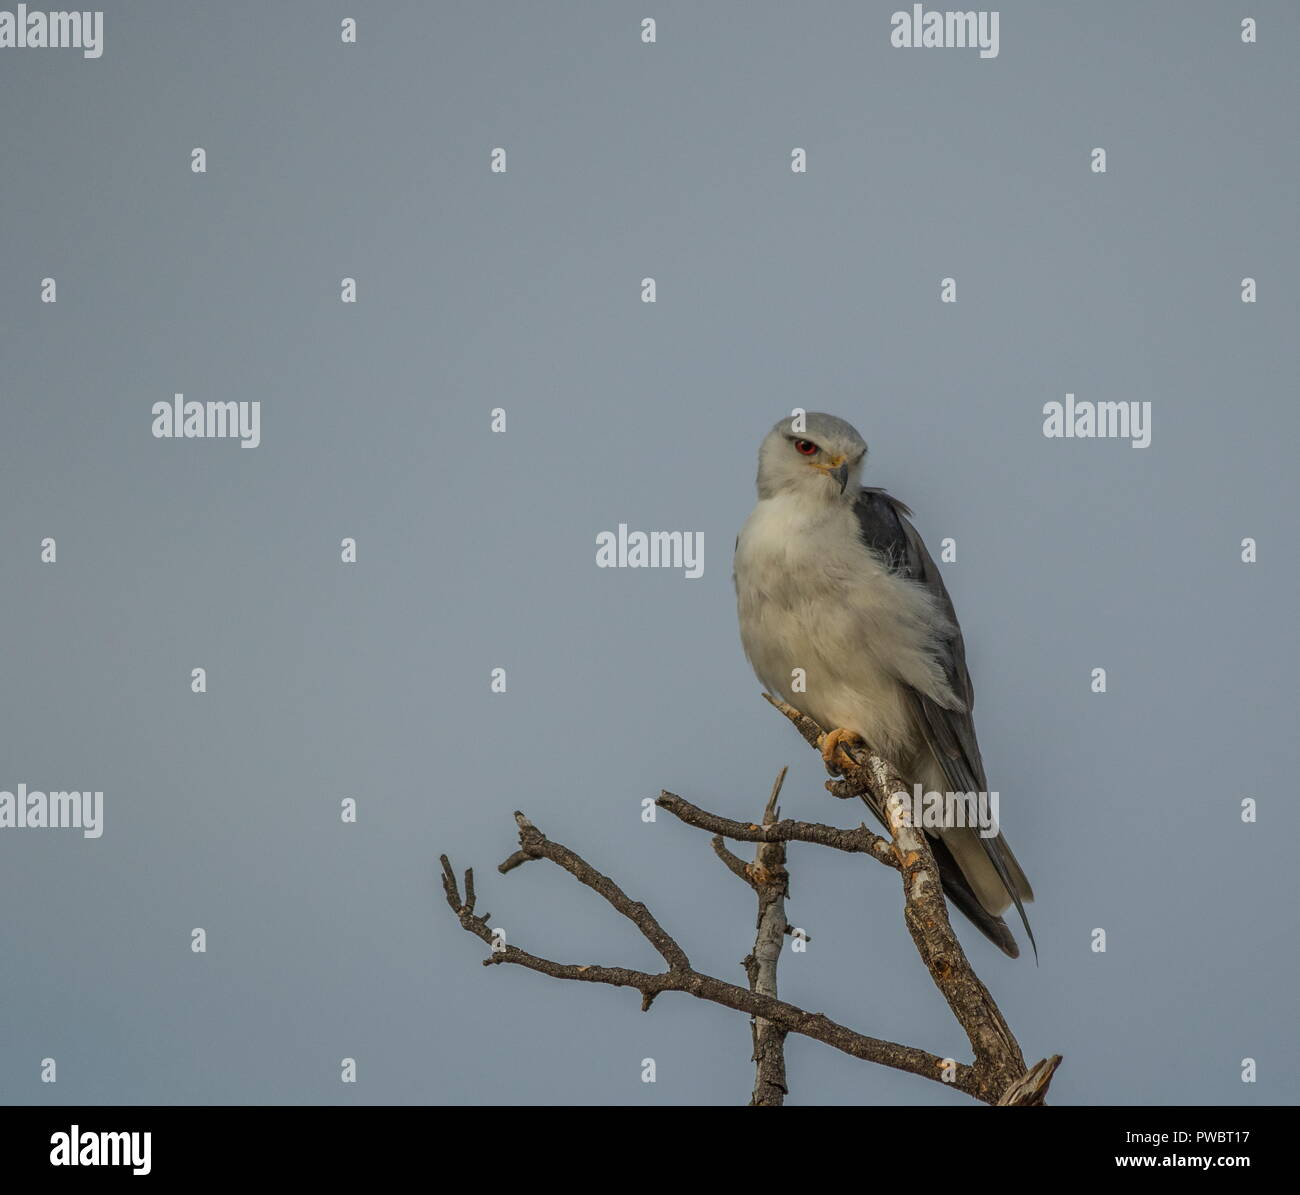 An African raptor perched on a dry branch isolated against a clear background image with copy space in landscape format - Stock Image